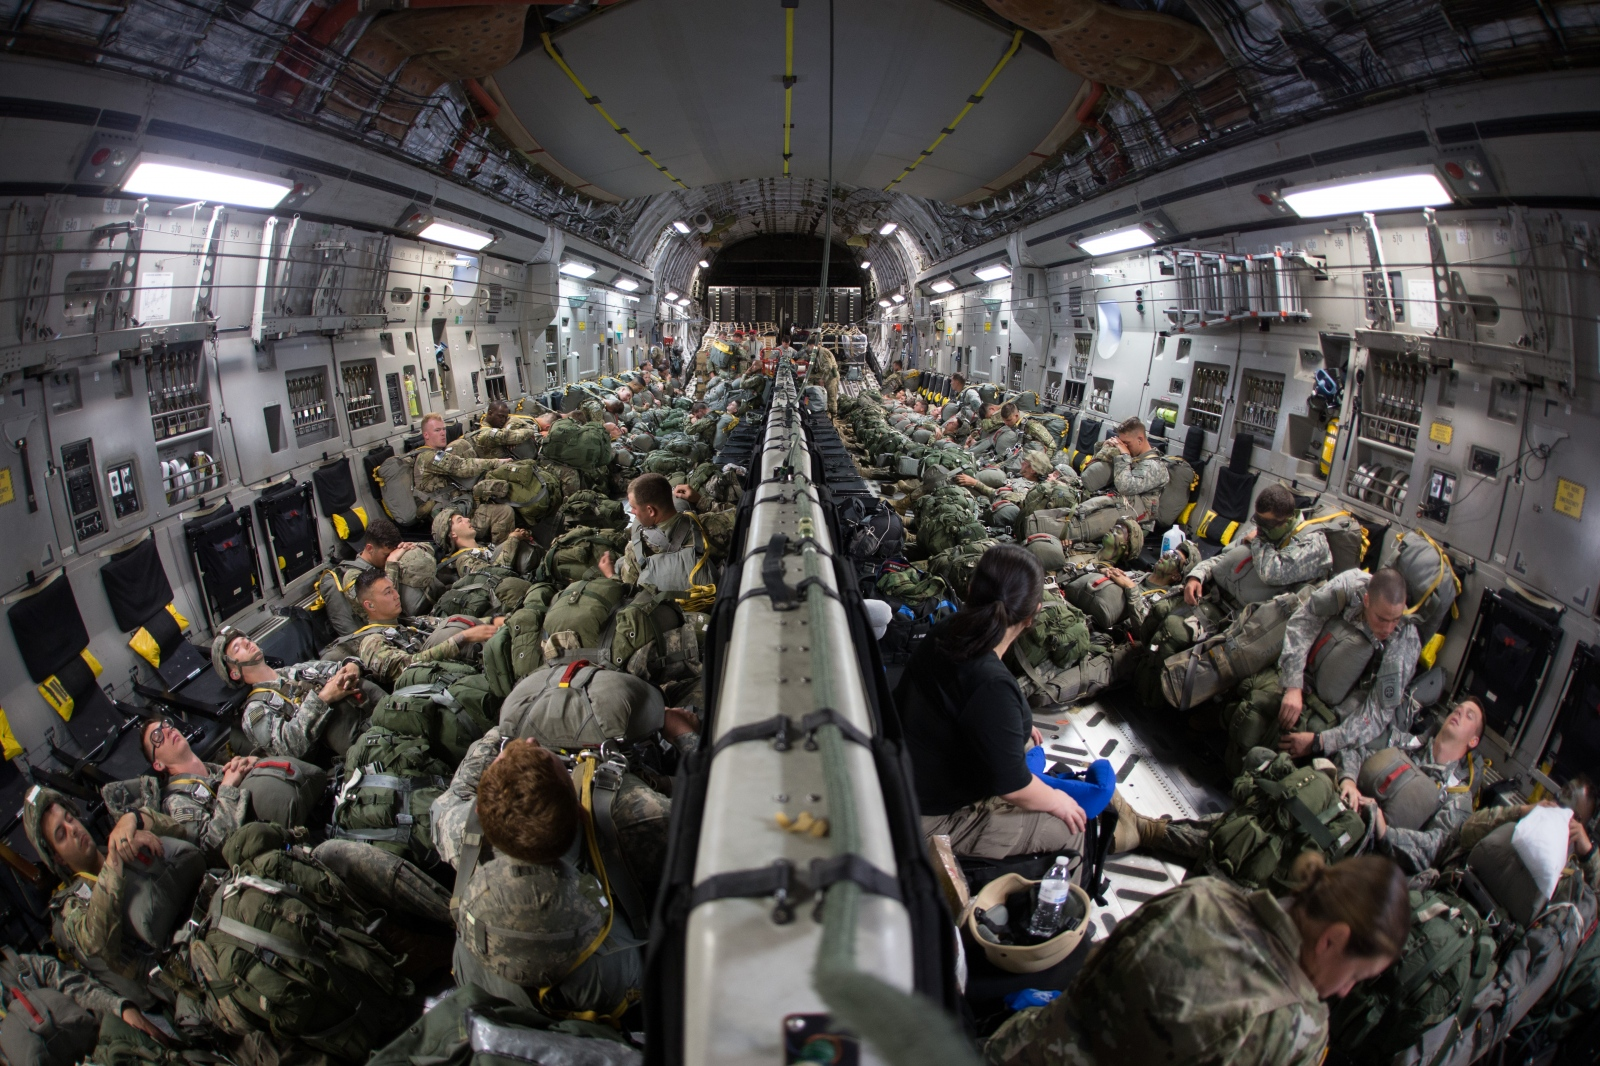 Paratroopers from the 82nd Airborne rest over the Atlantic Ocean while enroute to a training mission in Gabon Africa.